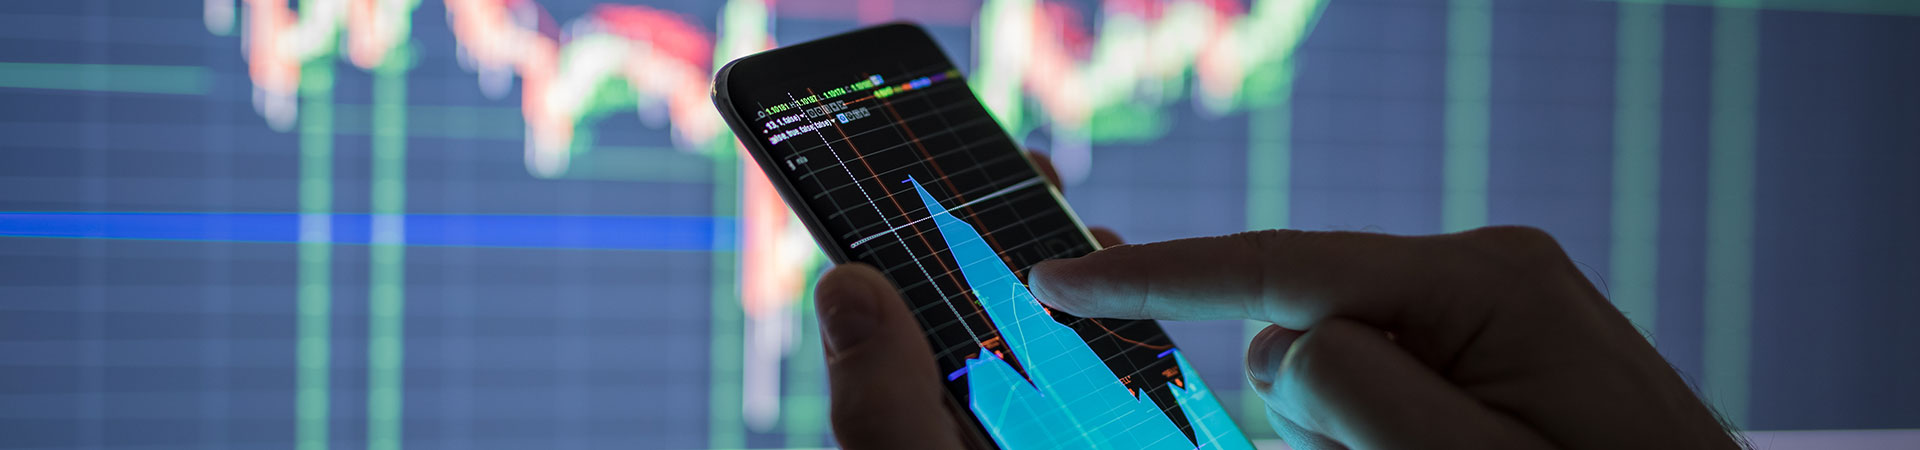 Online futures options trading canada